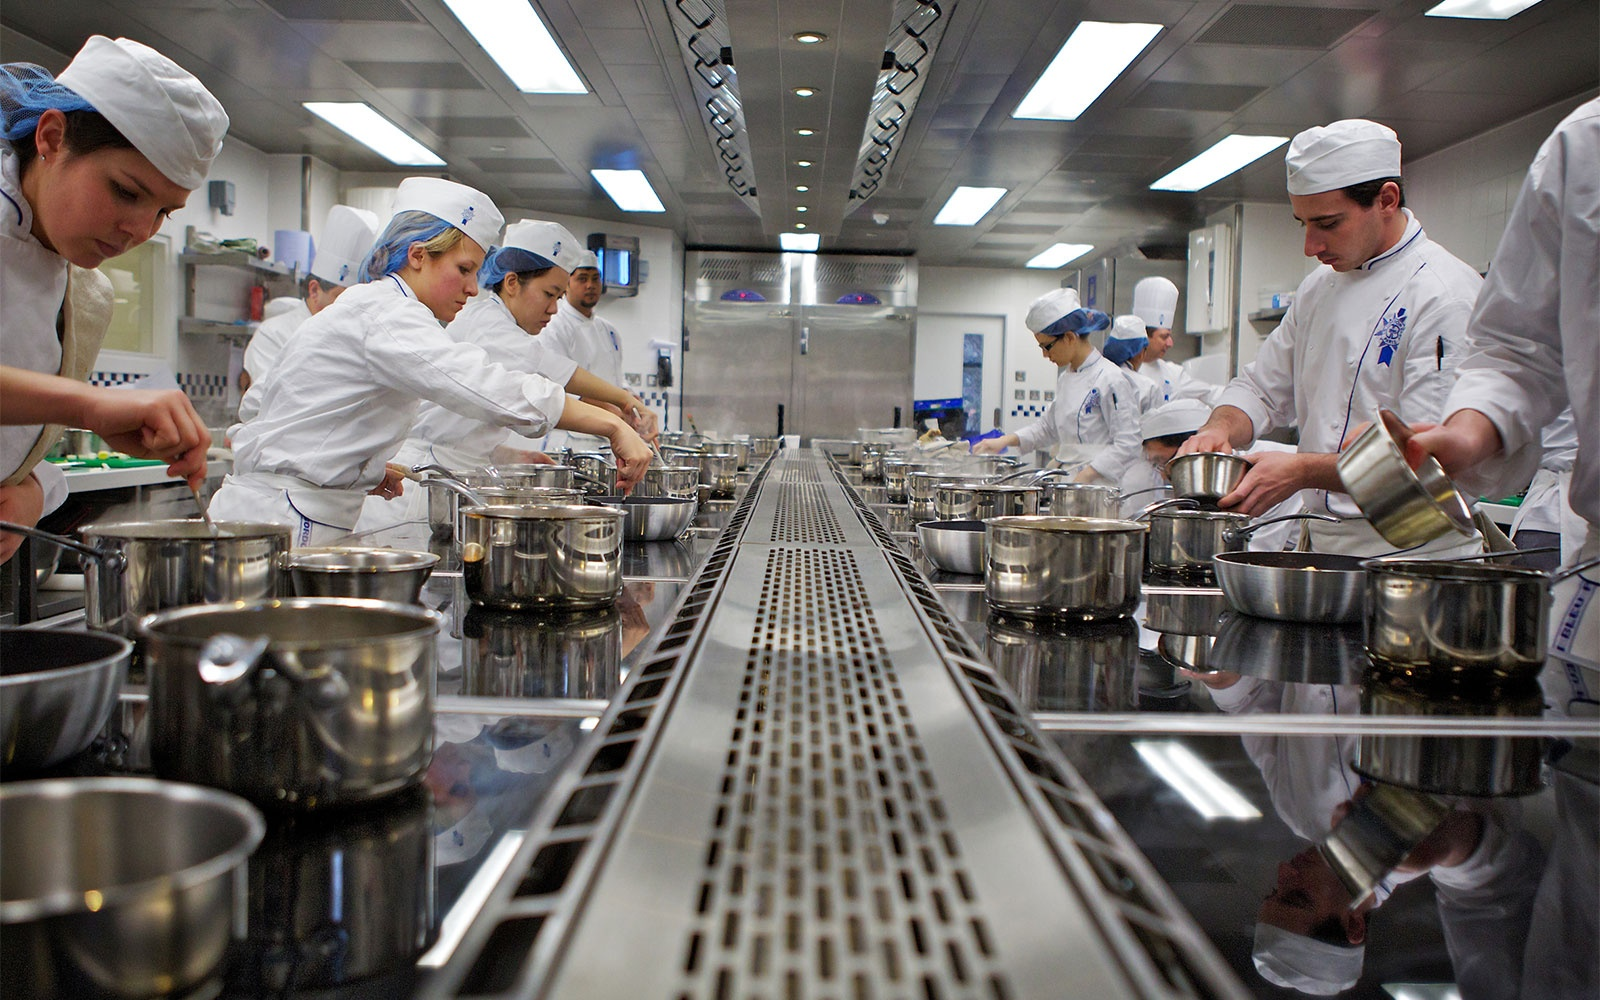 classroom at Le Cordon Bleu culinary school